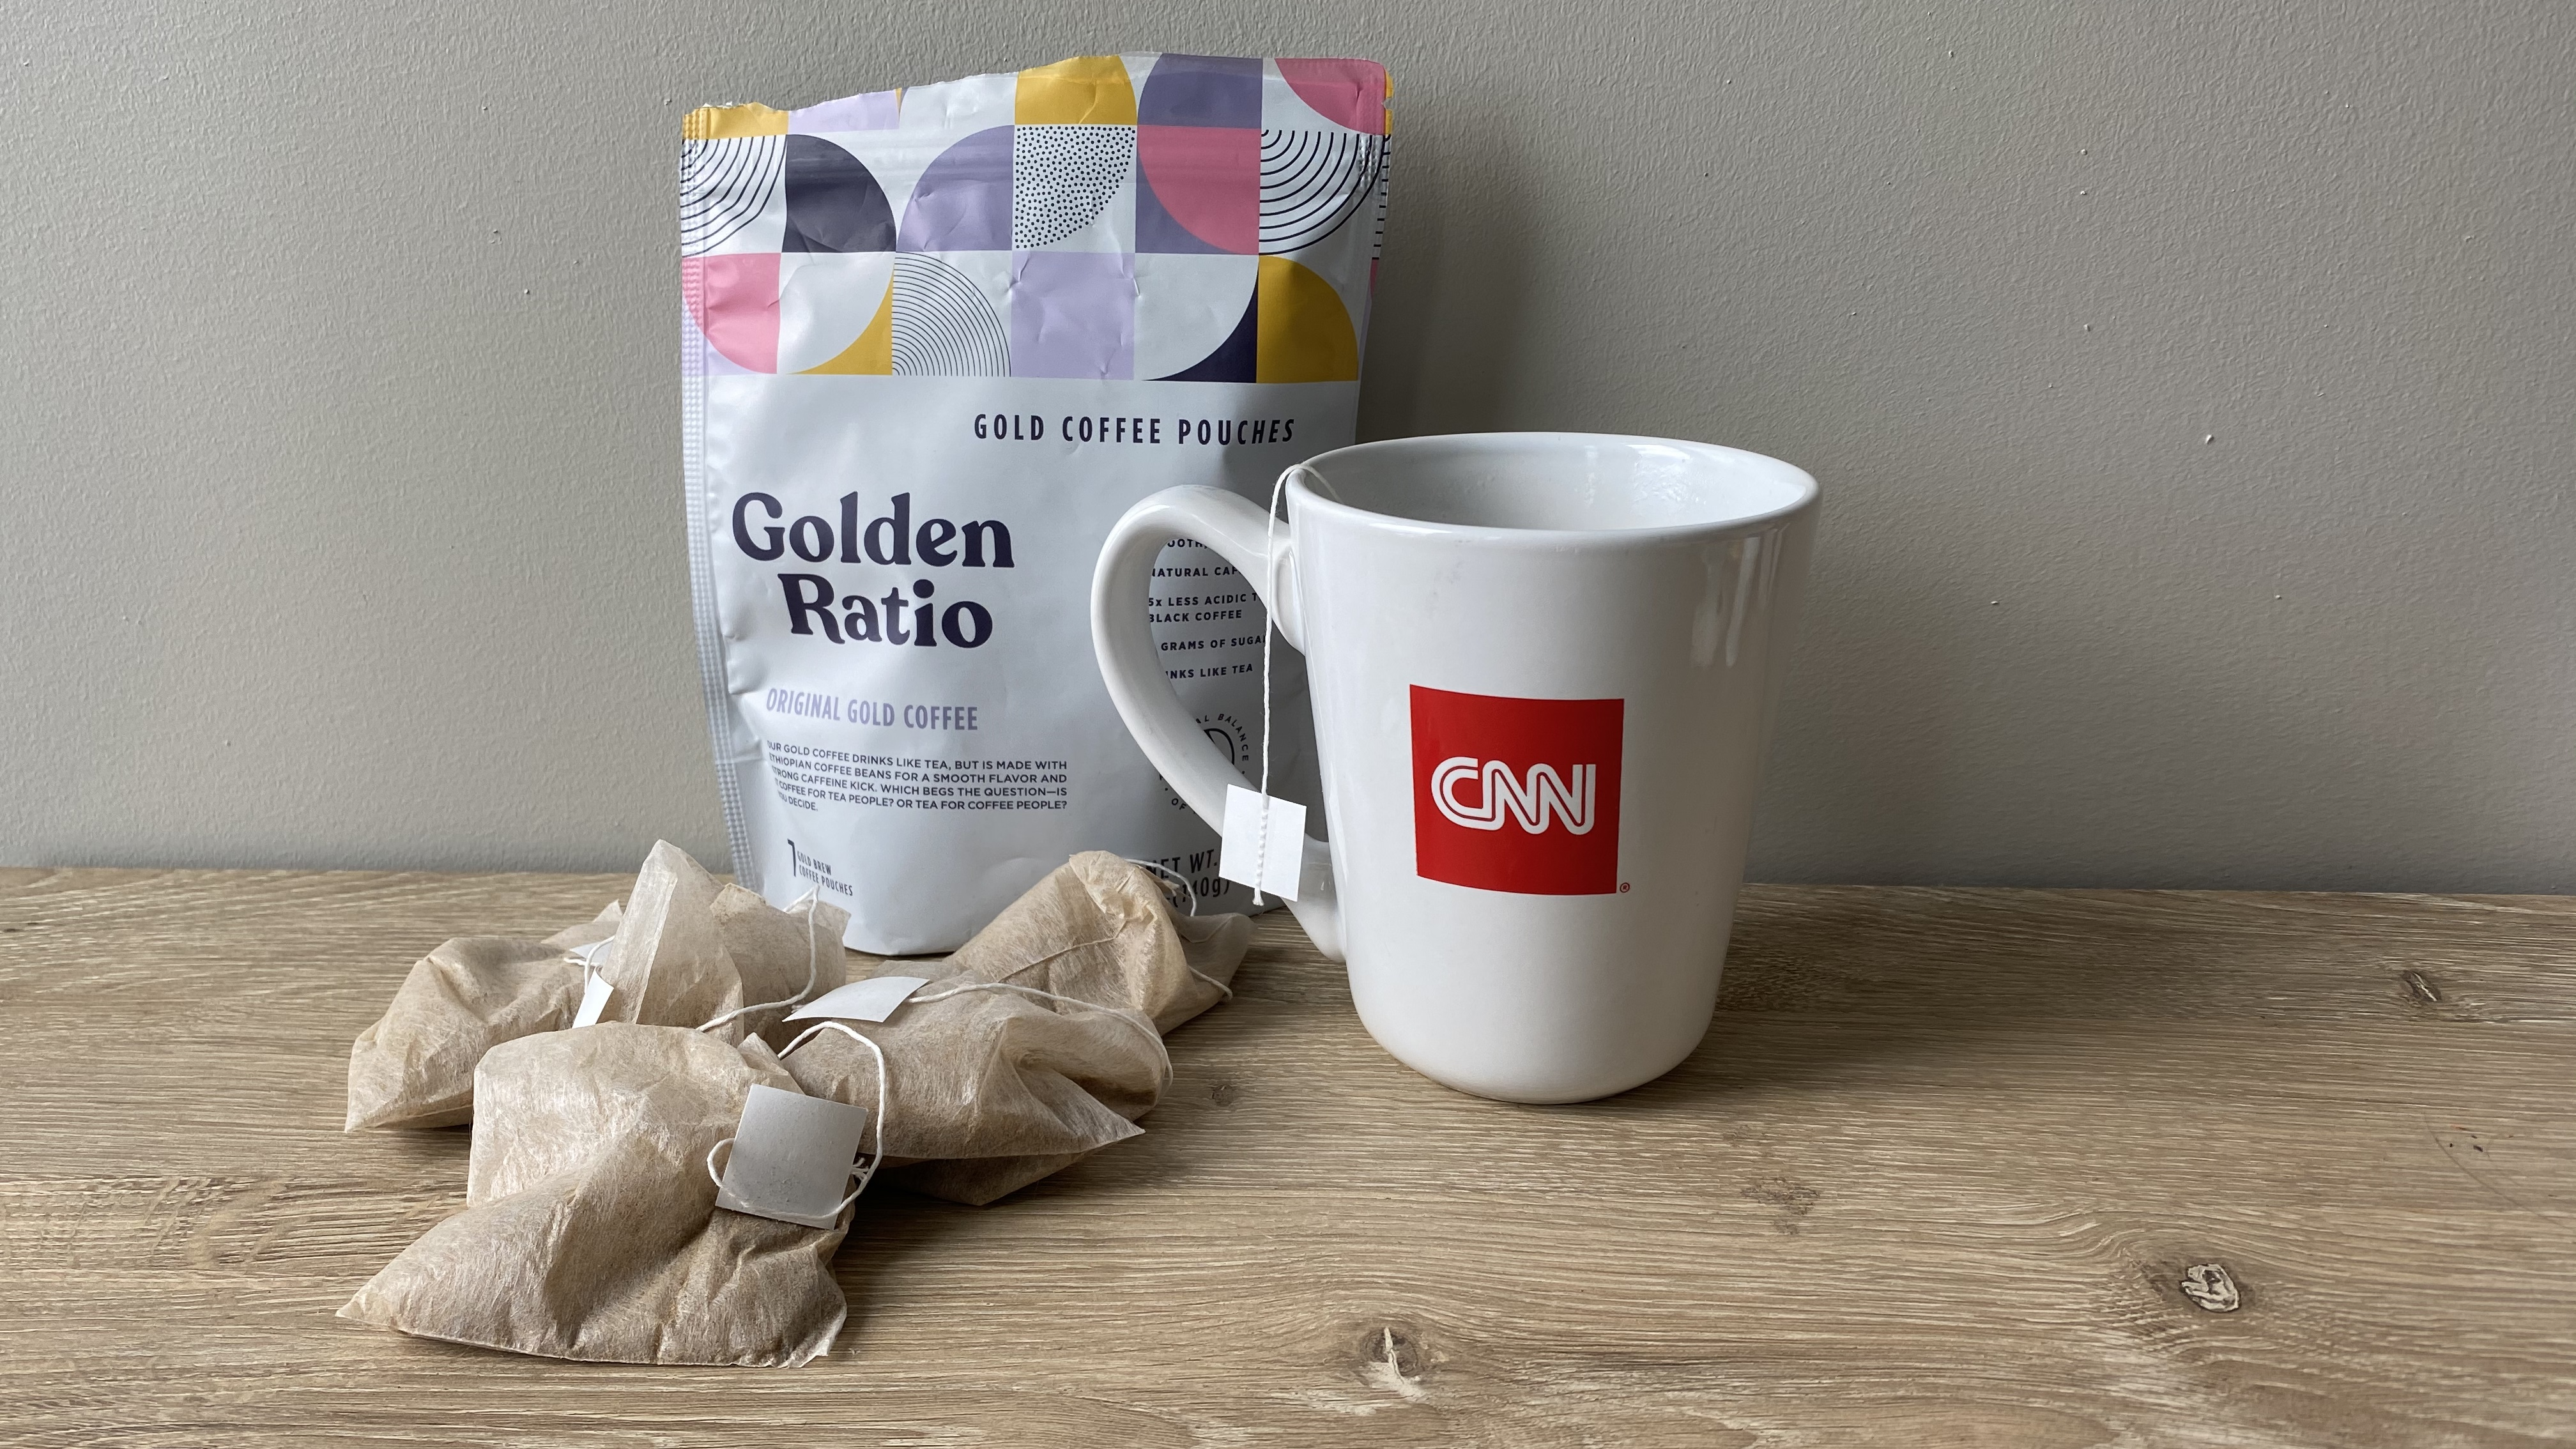 We tried gold coffee and loved its unexpected flavor